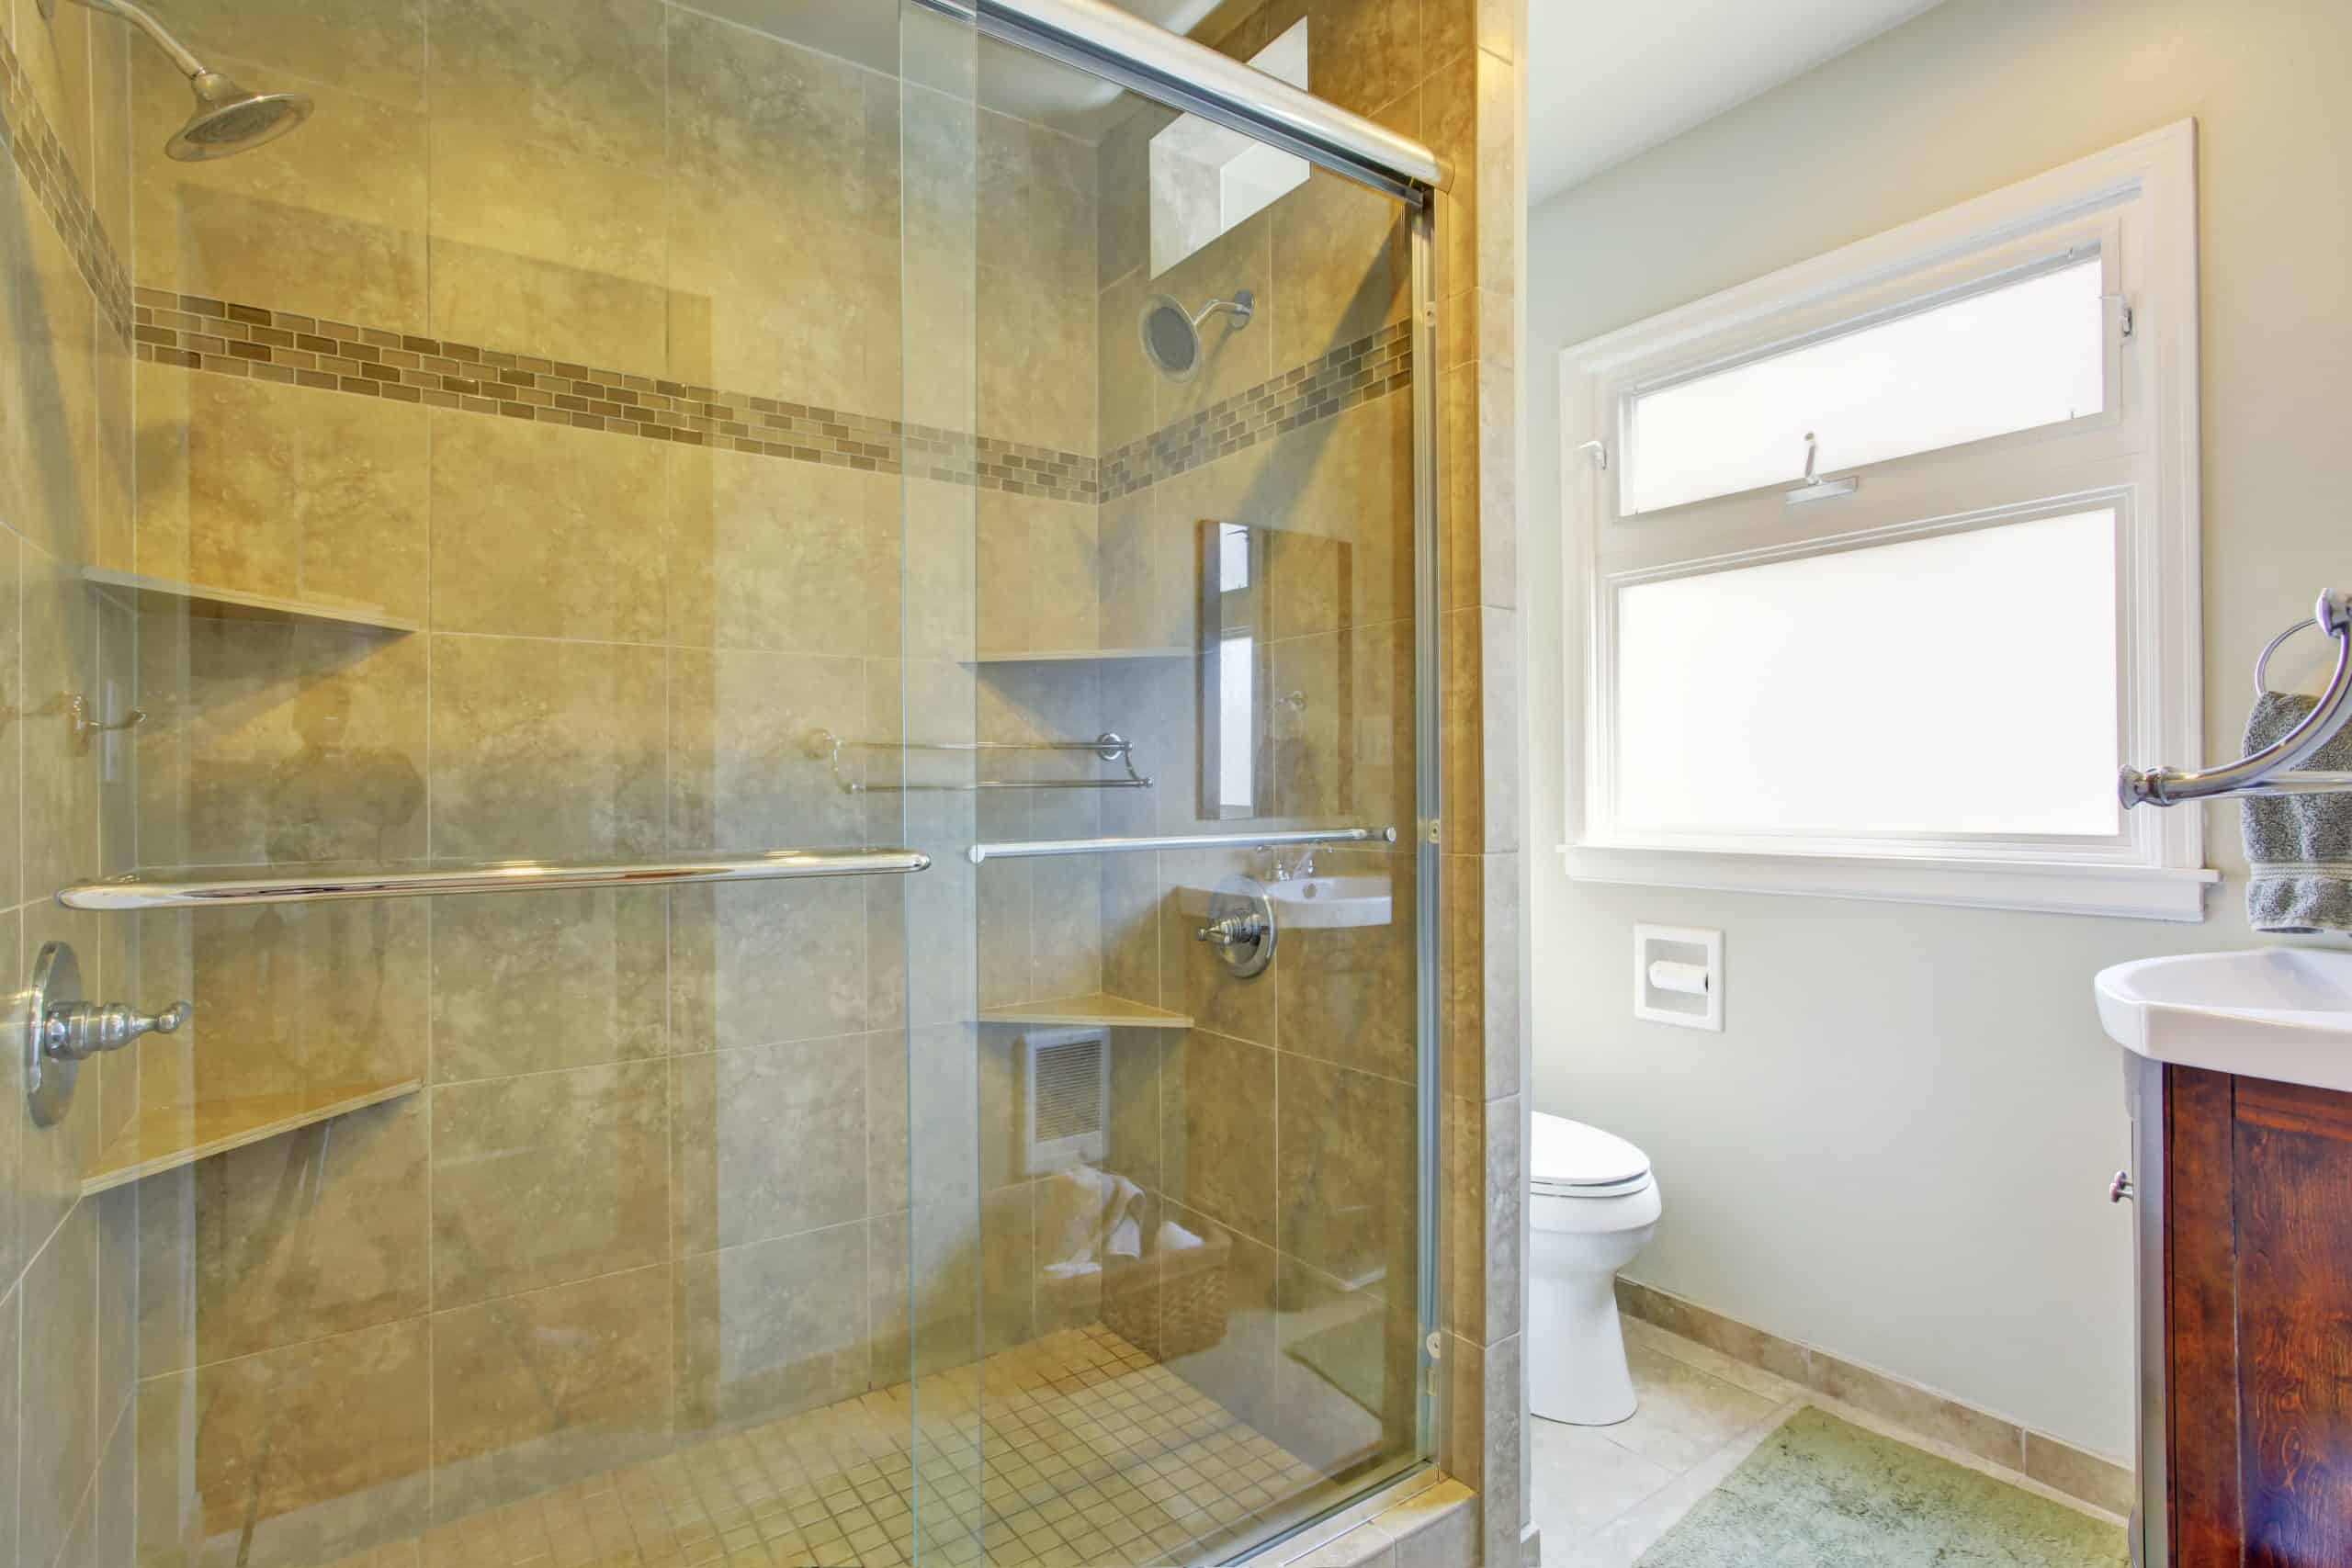 Aldora Fiesta glass shower doors see through to a tiled shower with shelves and hardware. A toilet, window and sink are seen to the right.